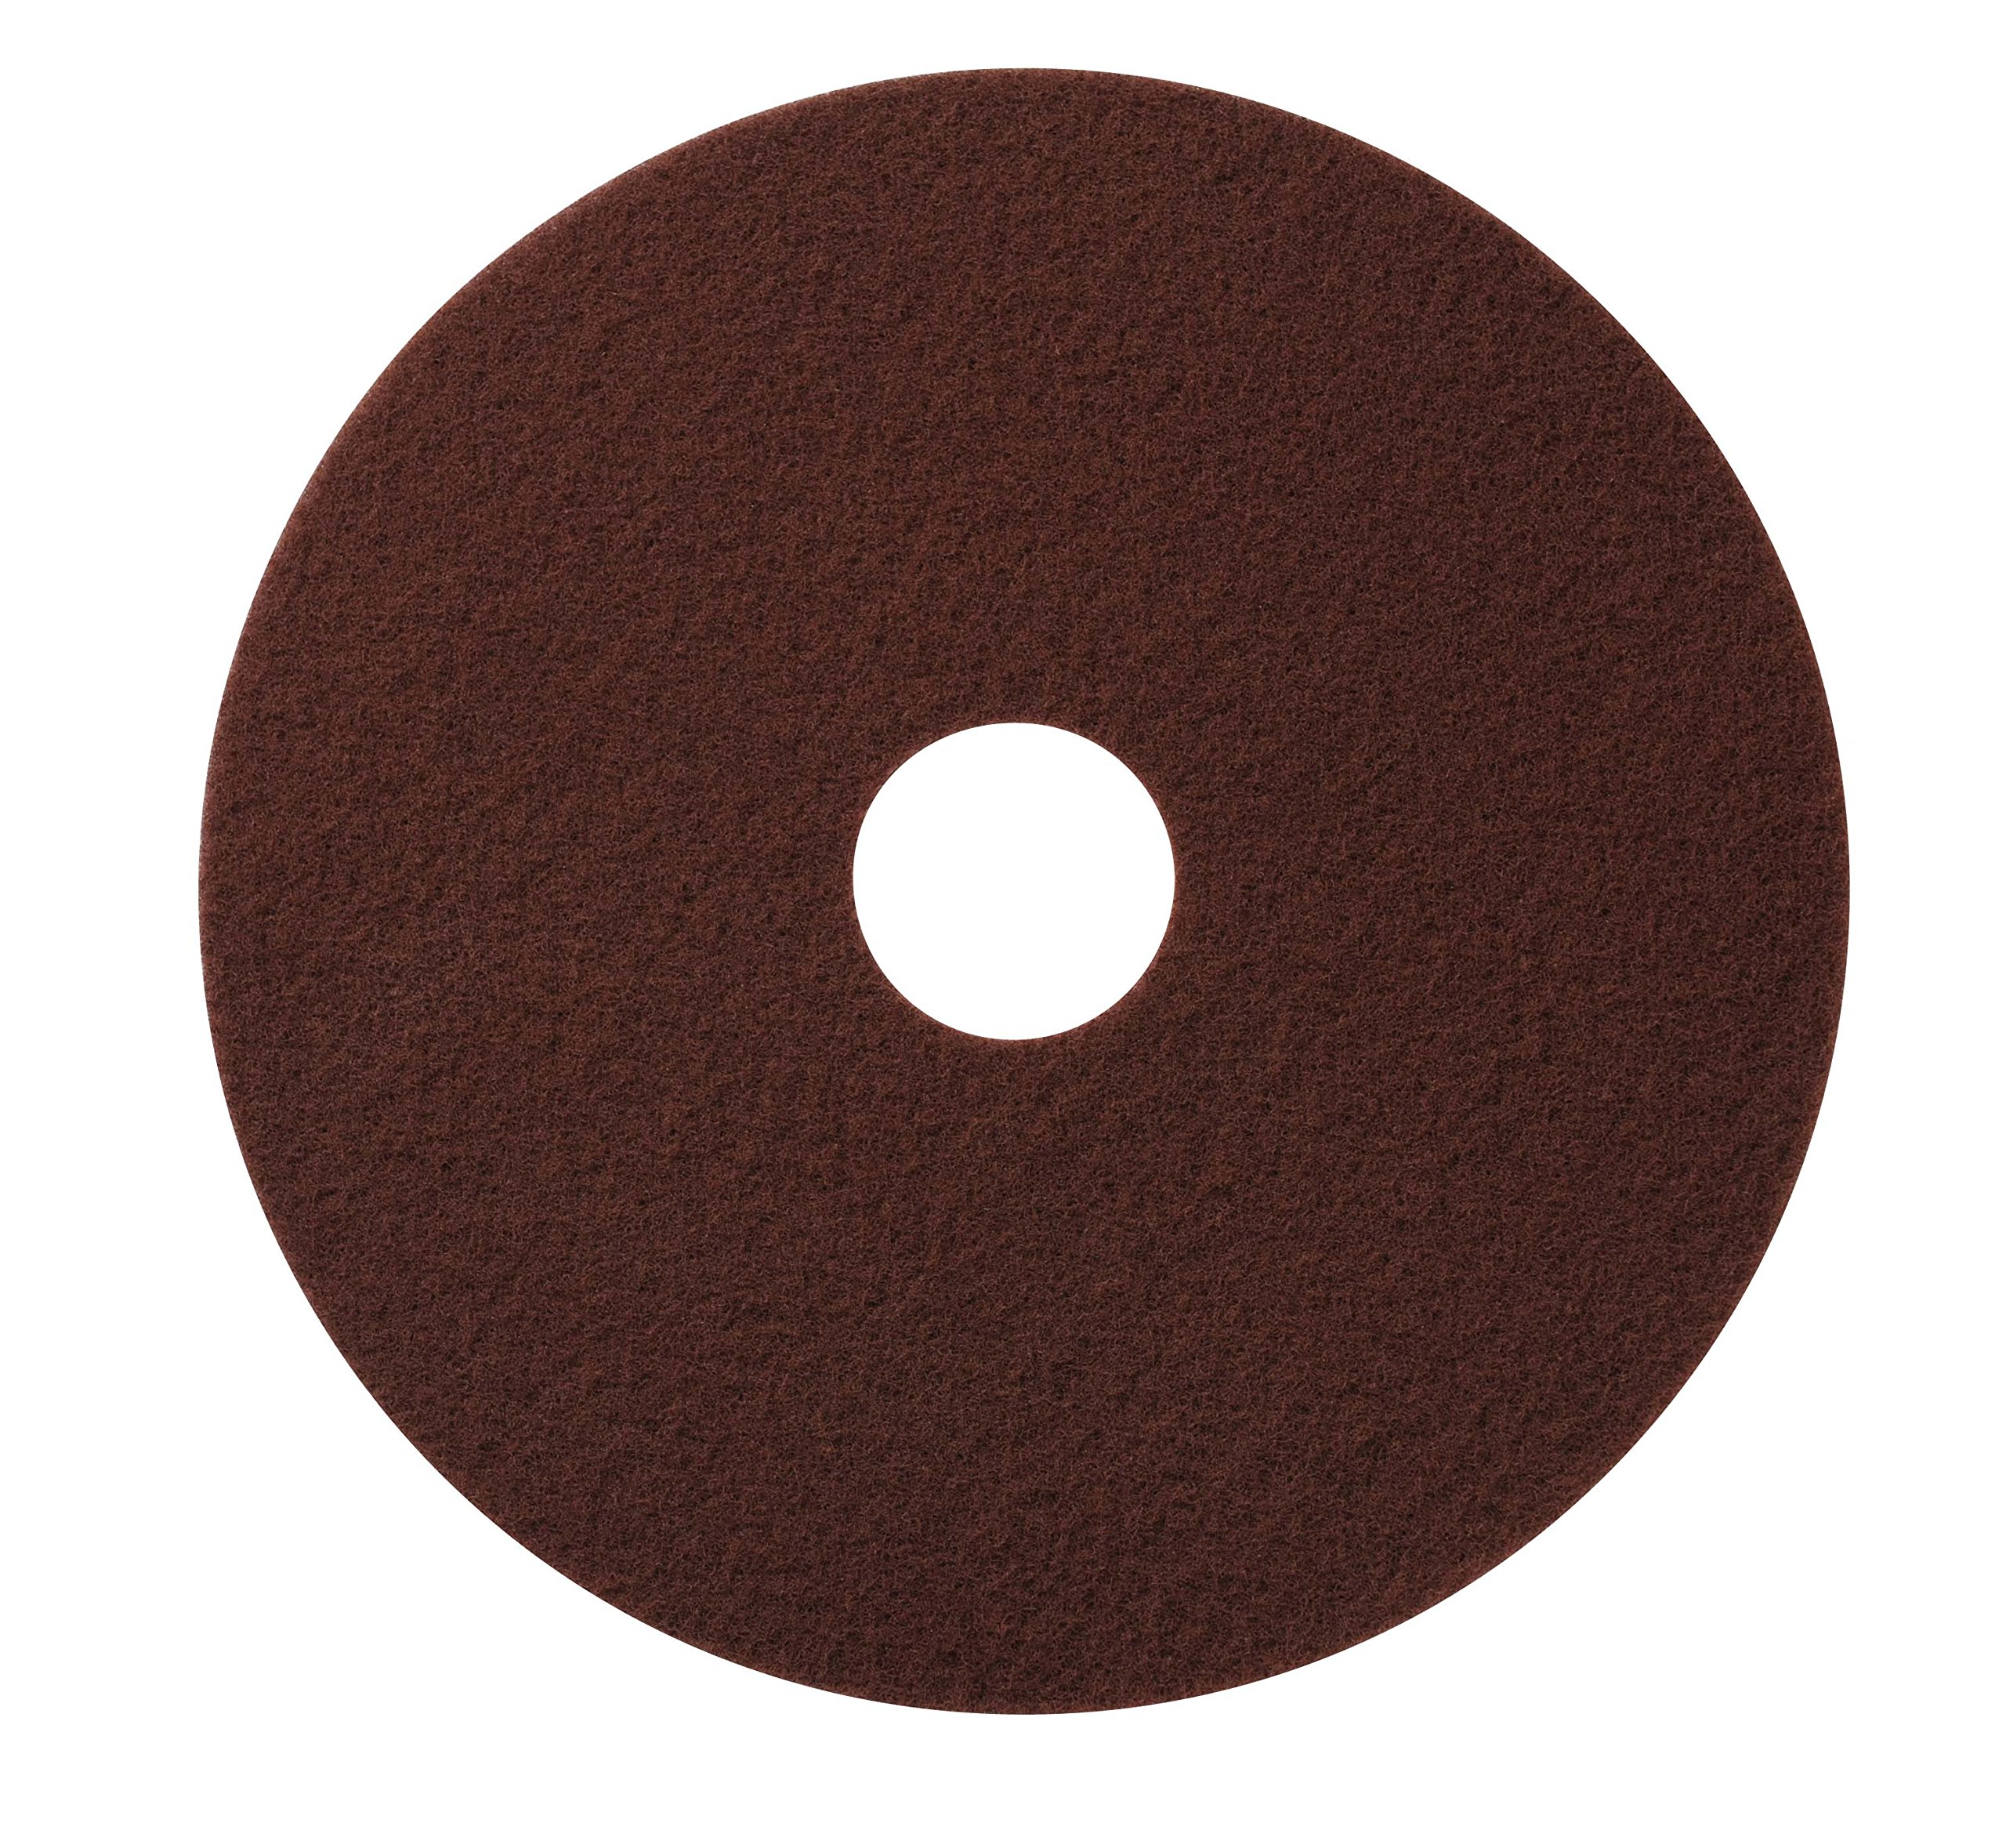 Glit/Microtron 420720 Chemical Free Stripping or Deep Scrub Pad, 20'', Maroon (Pack of 10) by Glit / Microtron